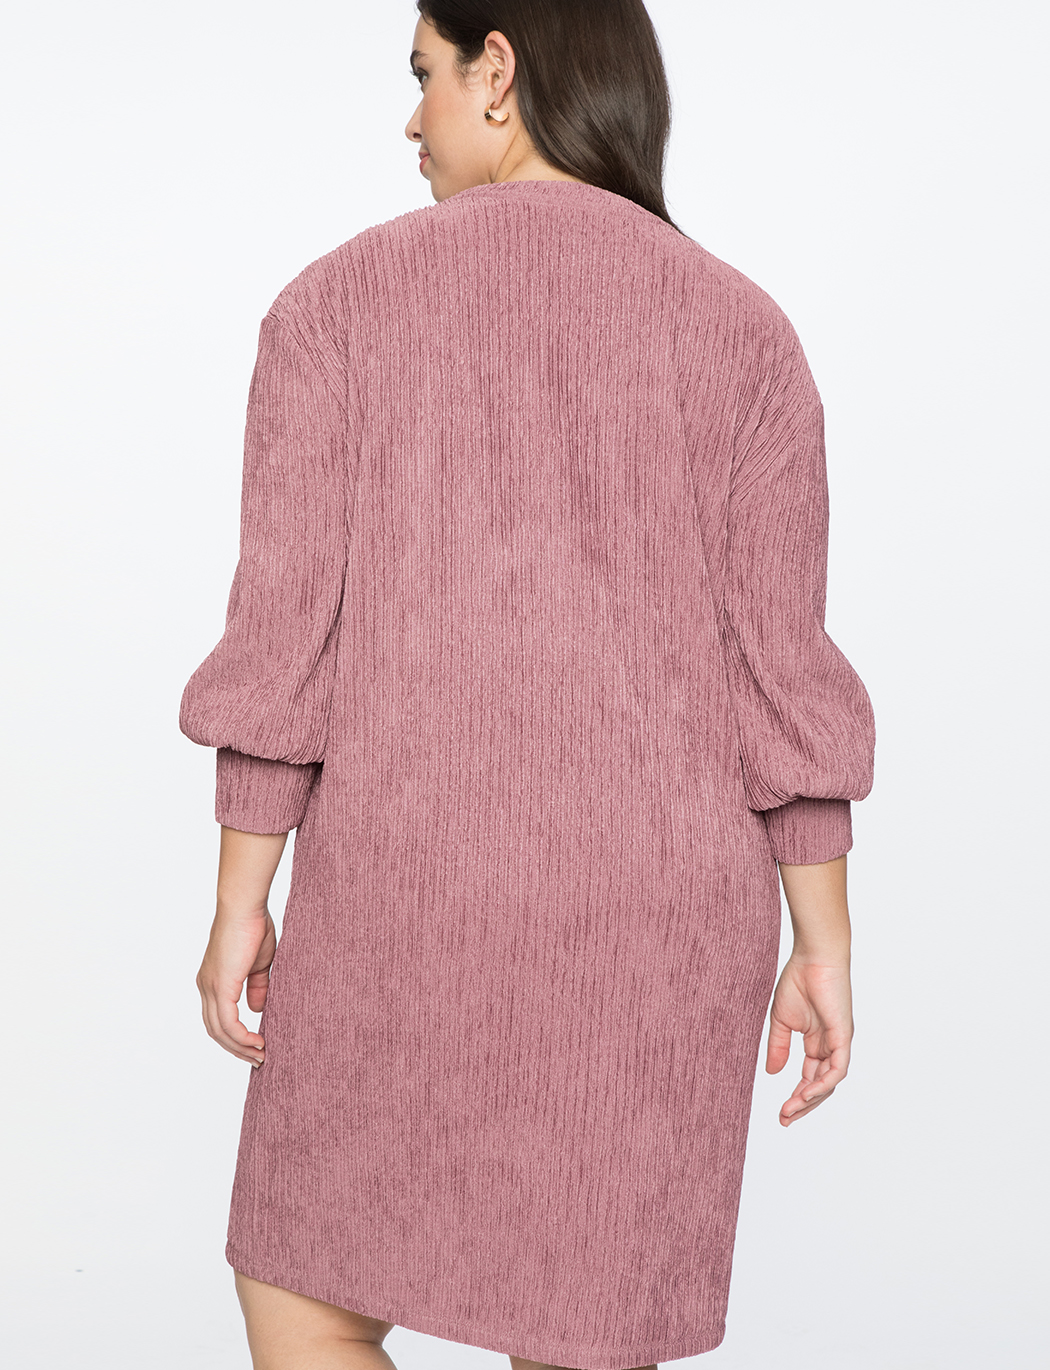 Dropped Shoulder Easy Dress